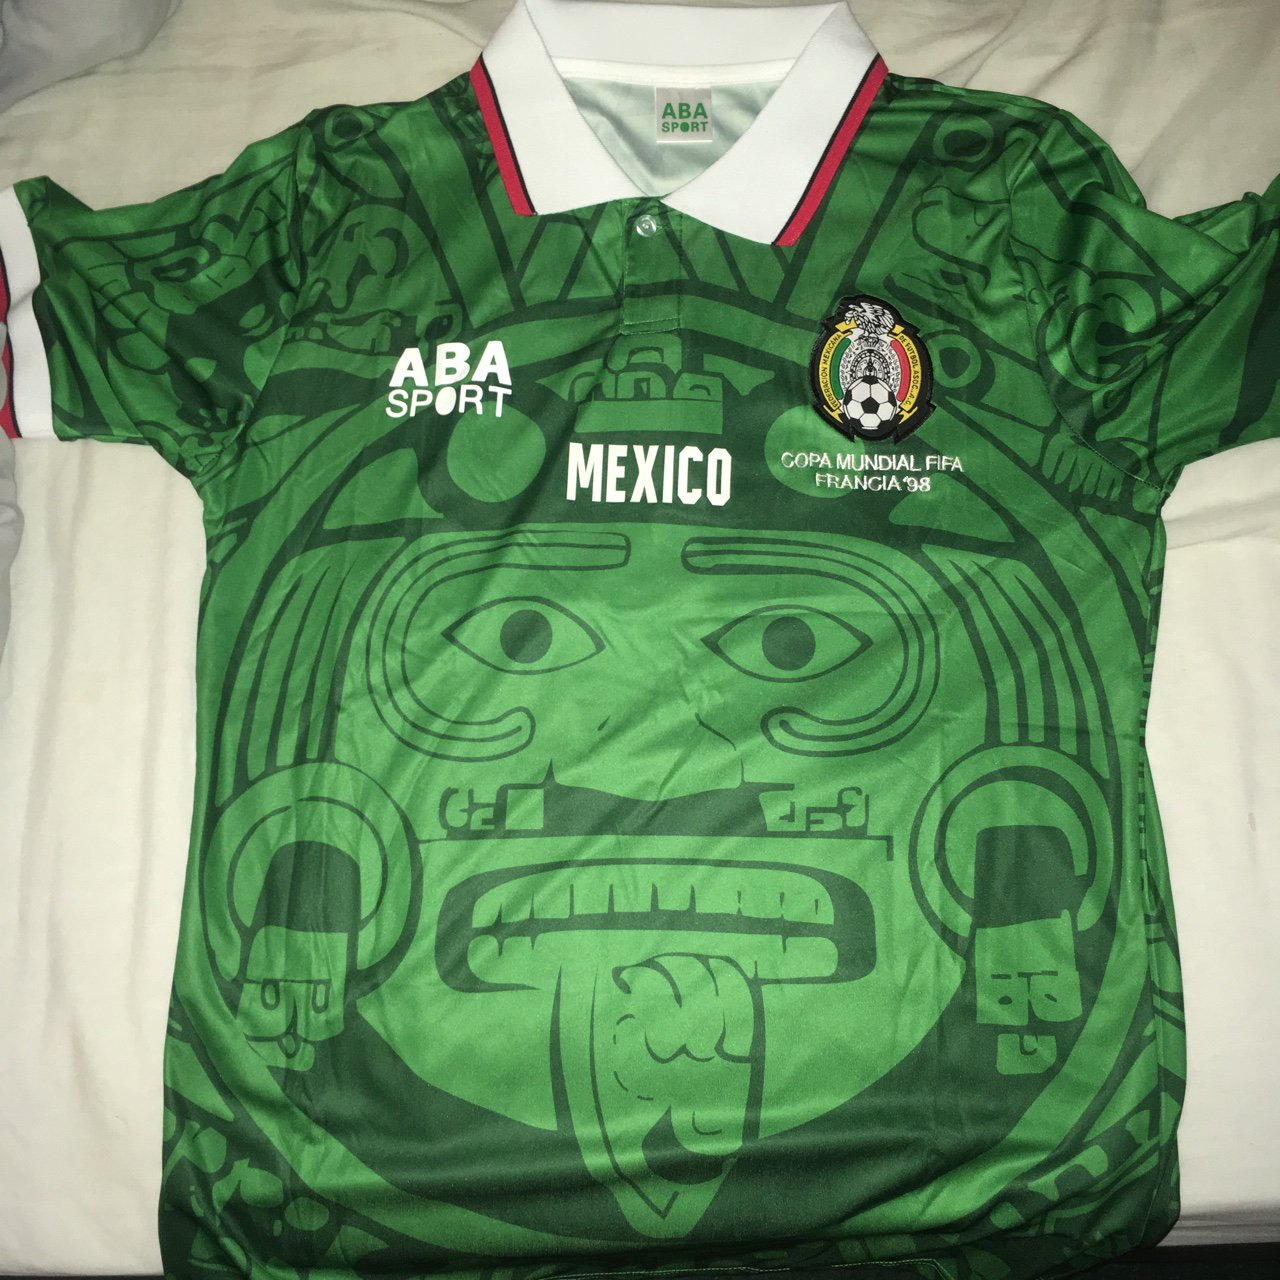 Vintage Mexico football shirt ABA sport - very rare 1998 in - Depop 680ef1bcc